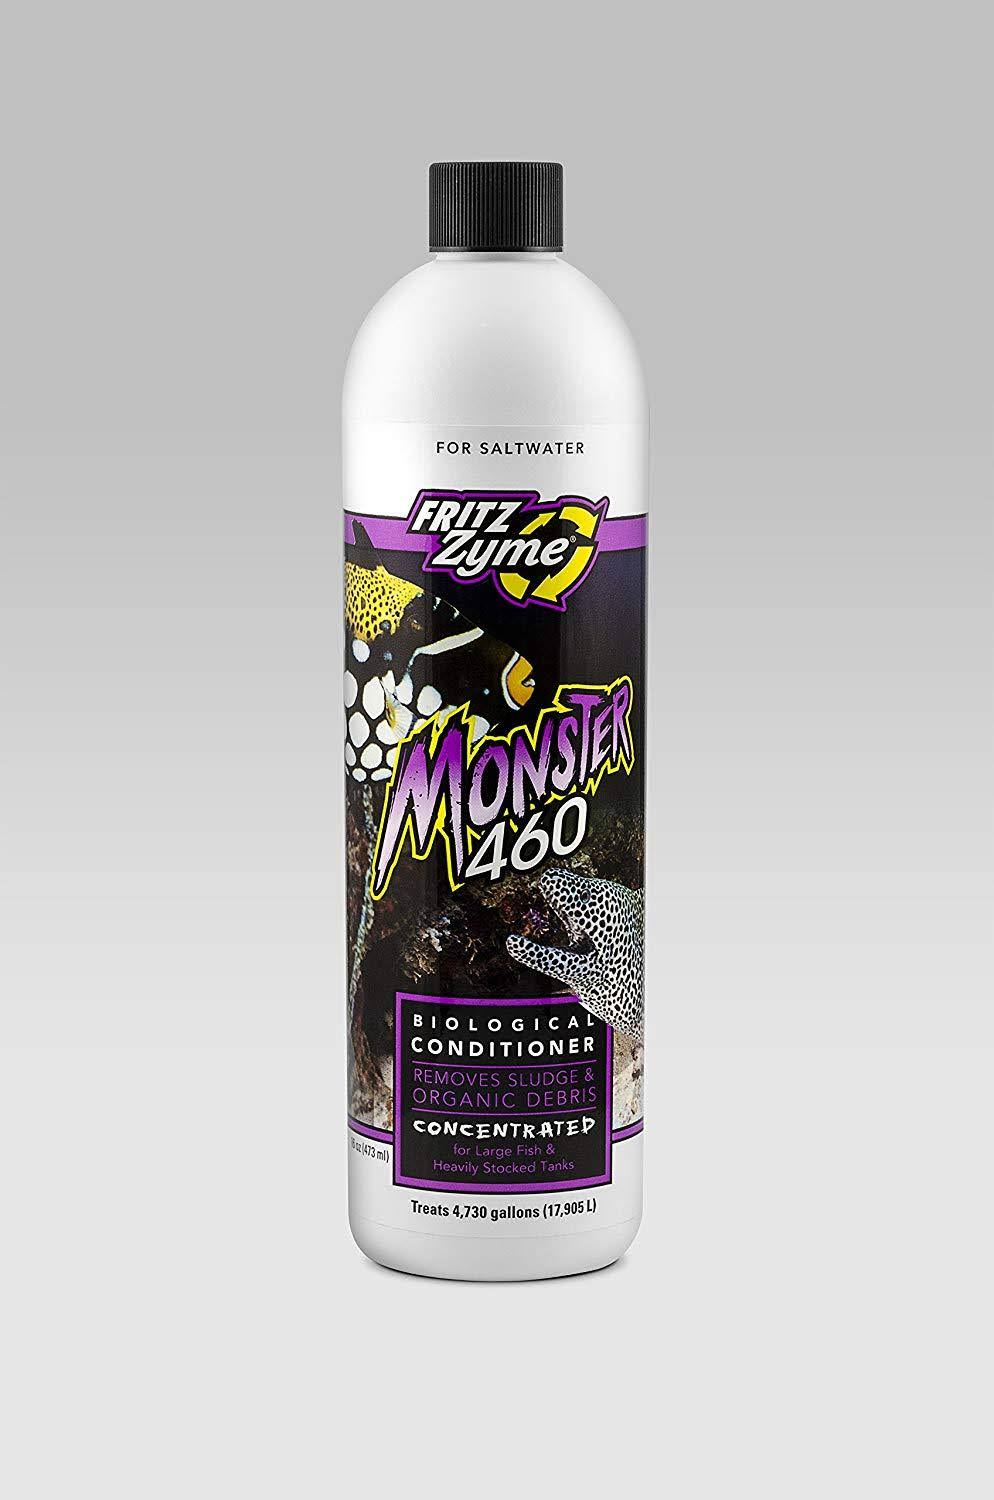 FritzZyme Monster 460 Saltwater Aquarium Biological Conditioner - 16oz